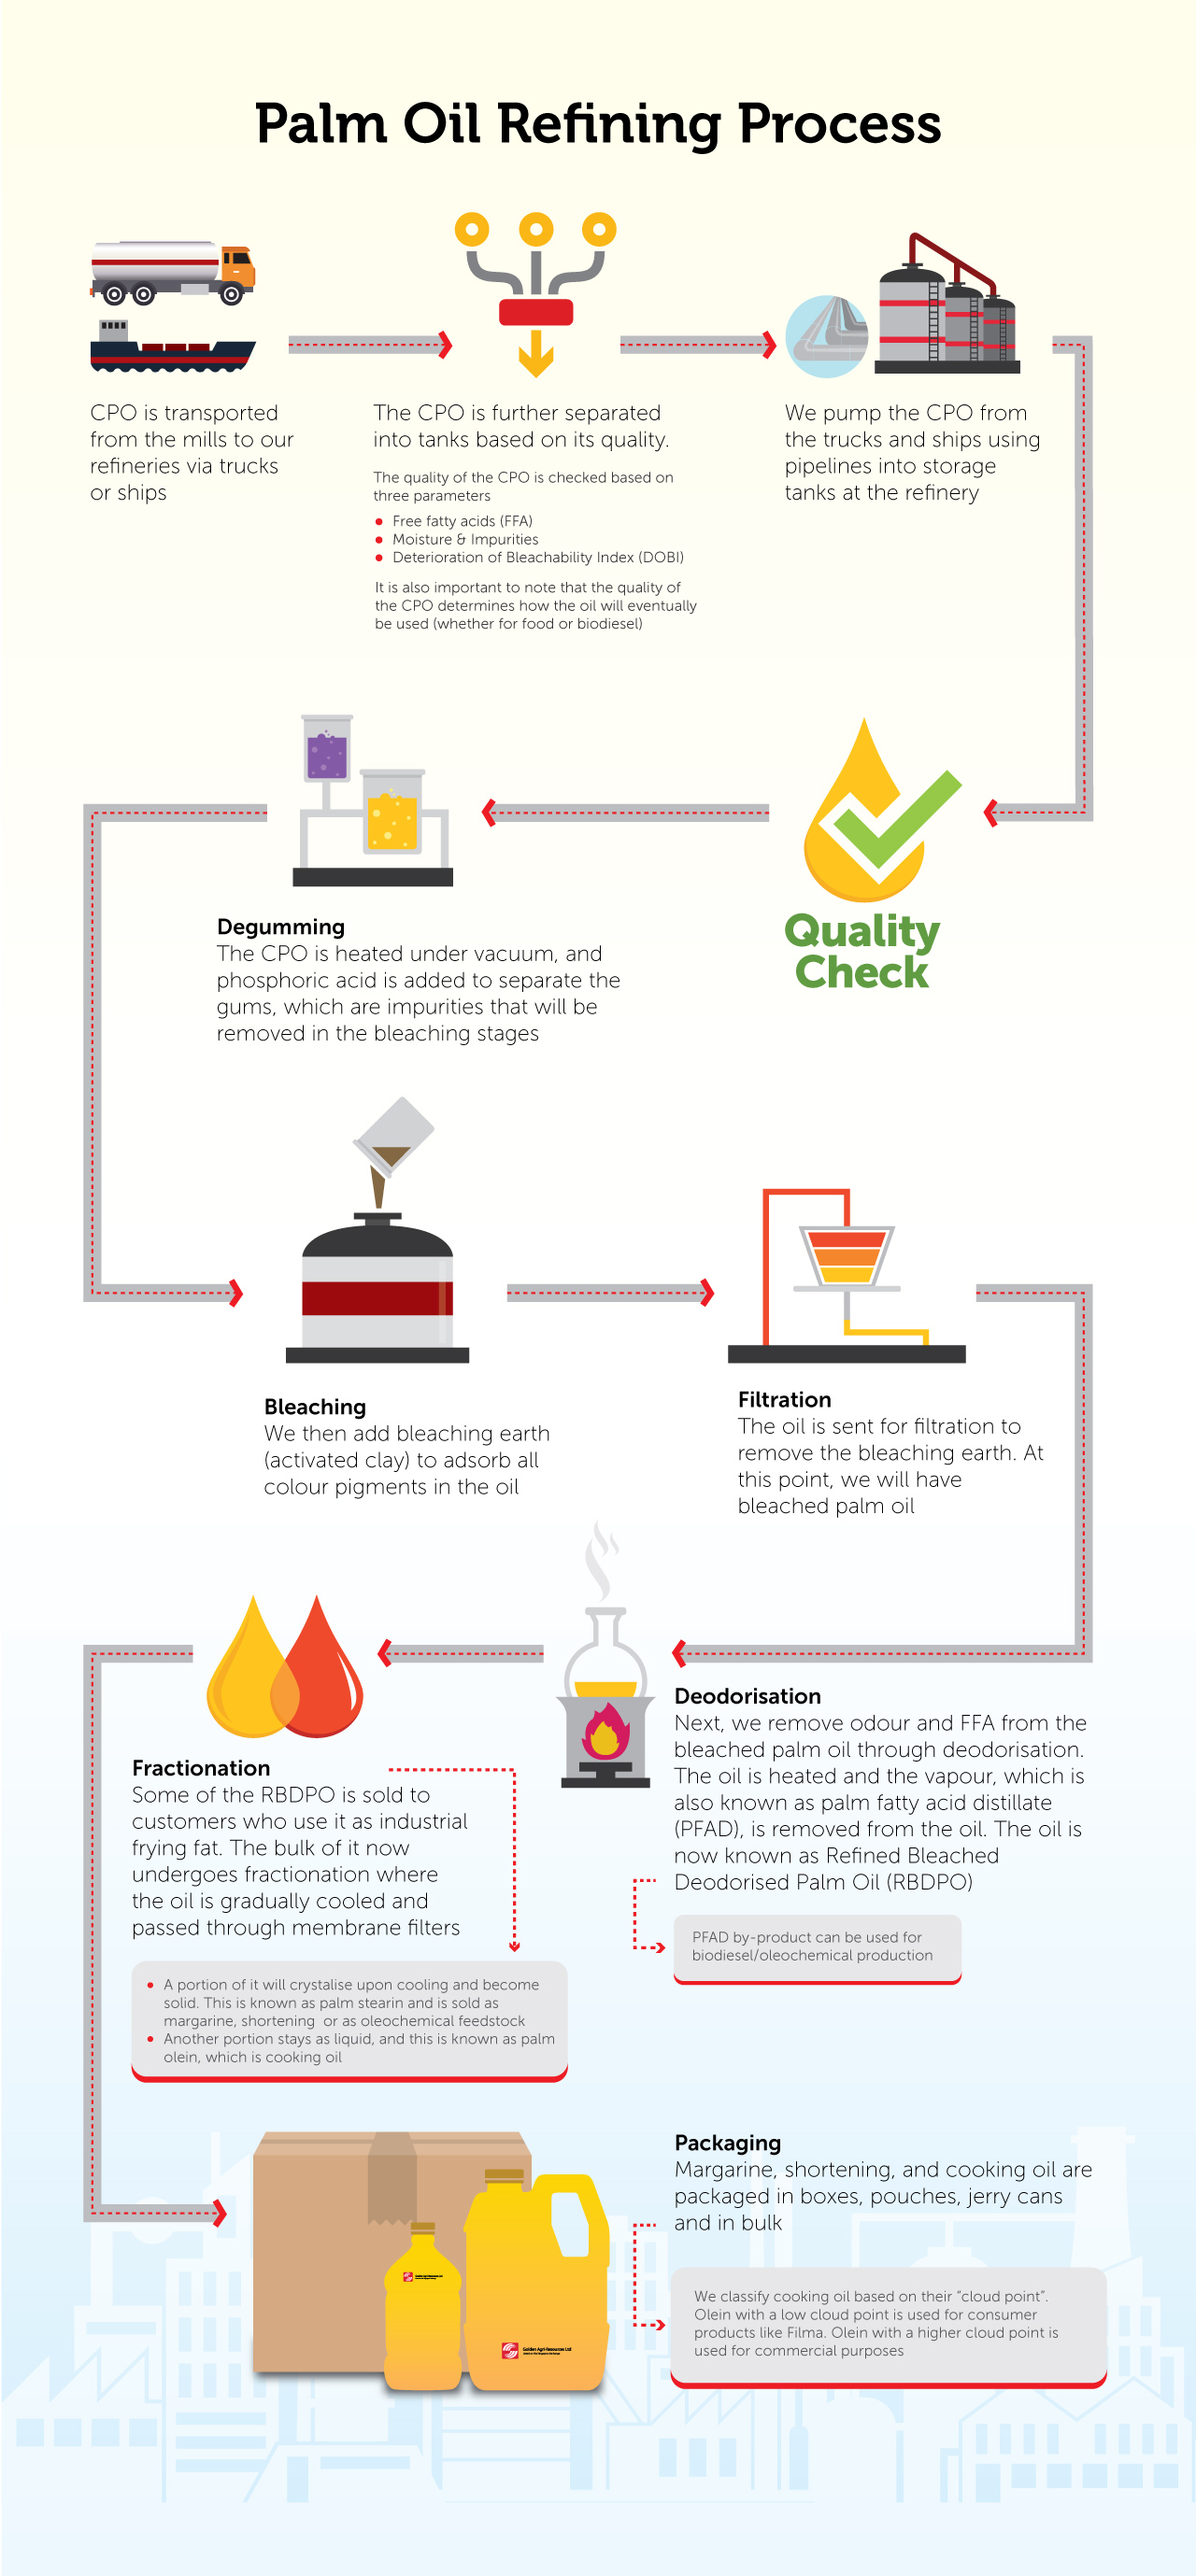 Palm oil refining process - Golden Agri-Resources